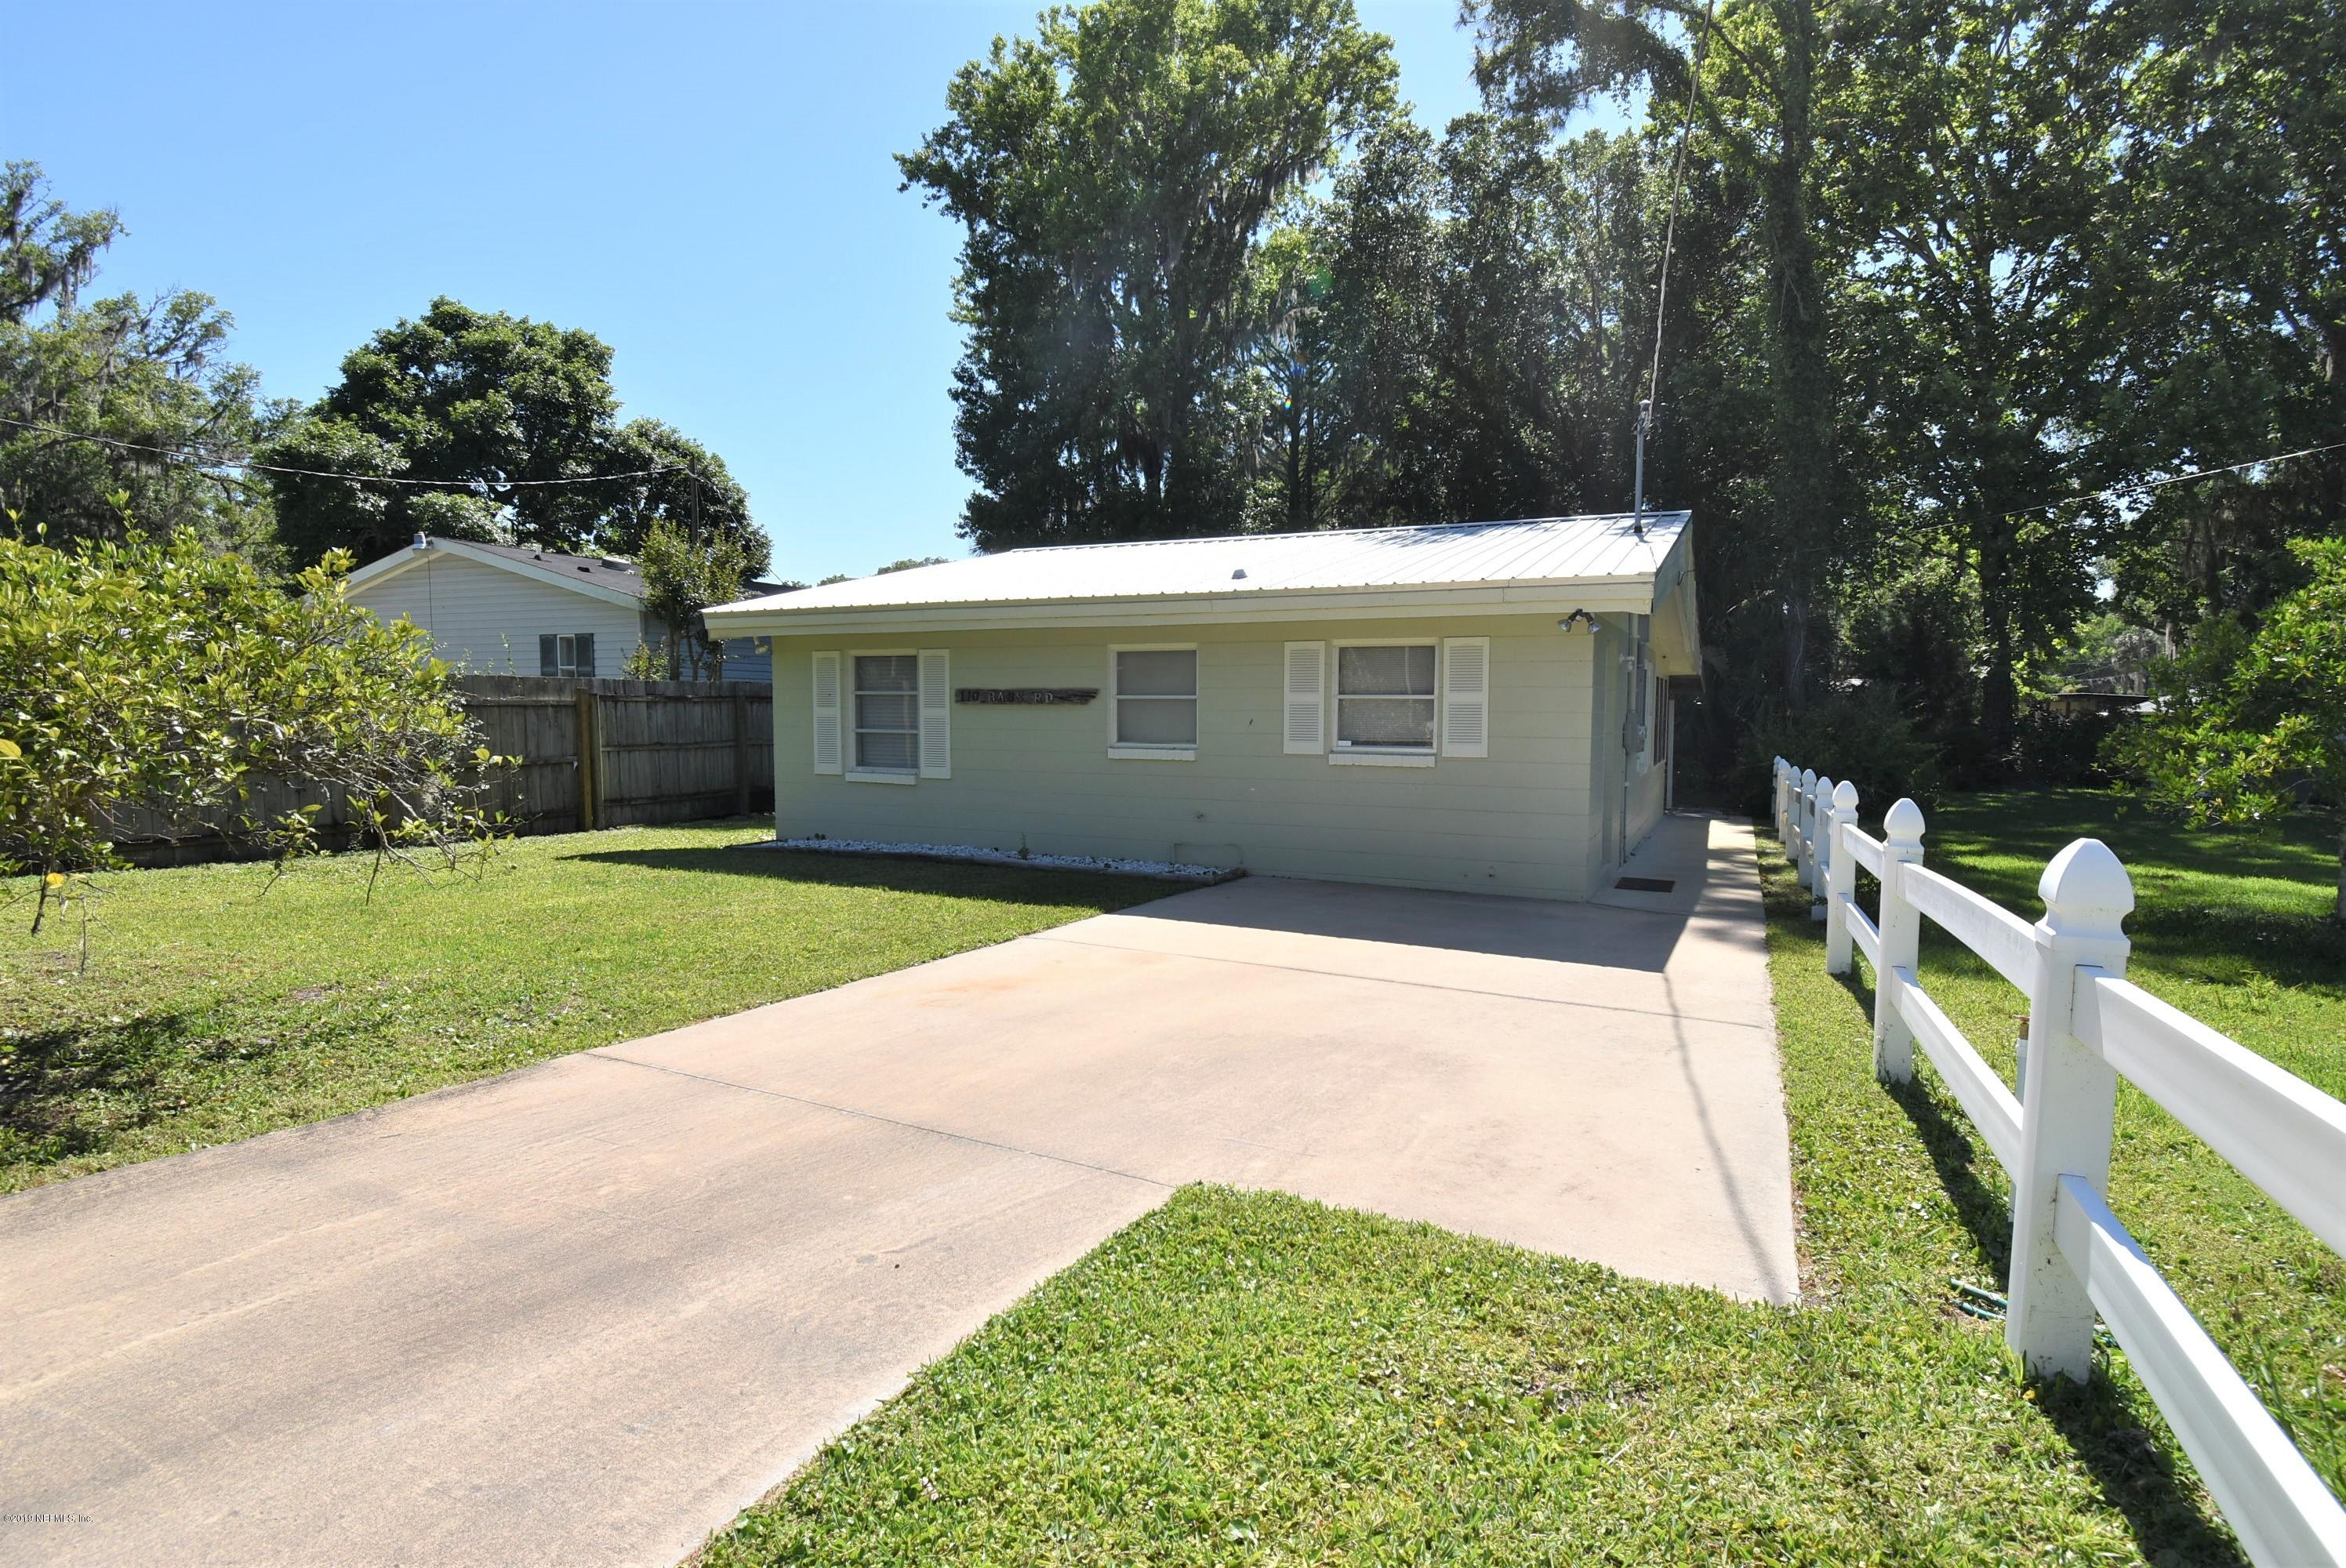 110 BASS, GEORGETOWN, FLORIDA 32139, 2 Bedrooms Bedrooms, ,1 BathroomBathrooms,Residential - single family,For sale,BASS,994996